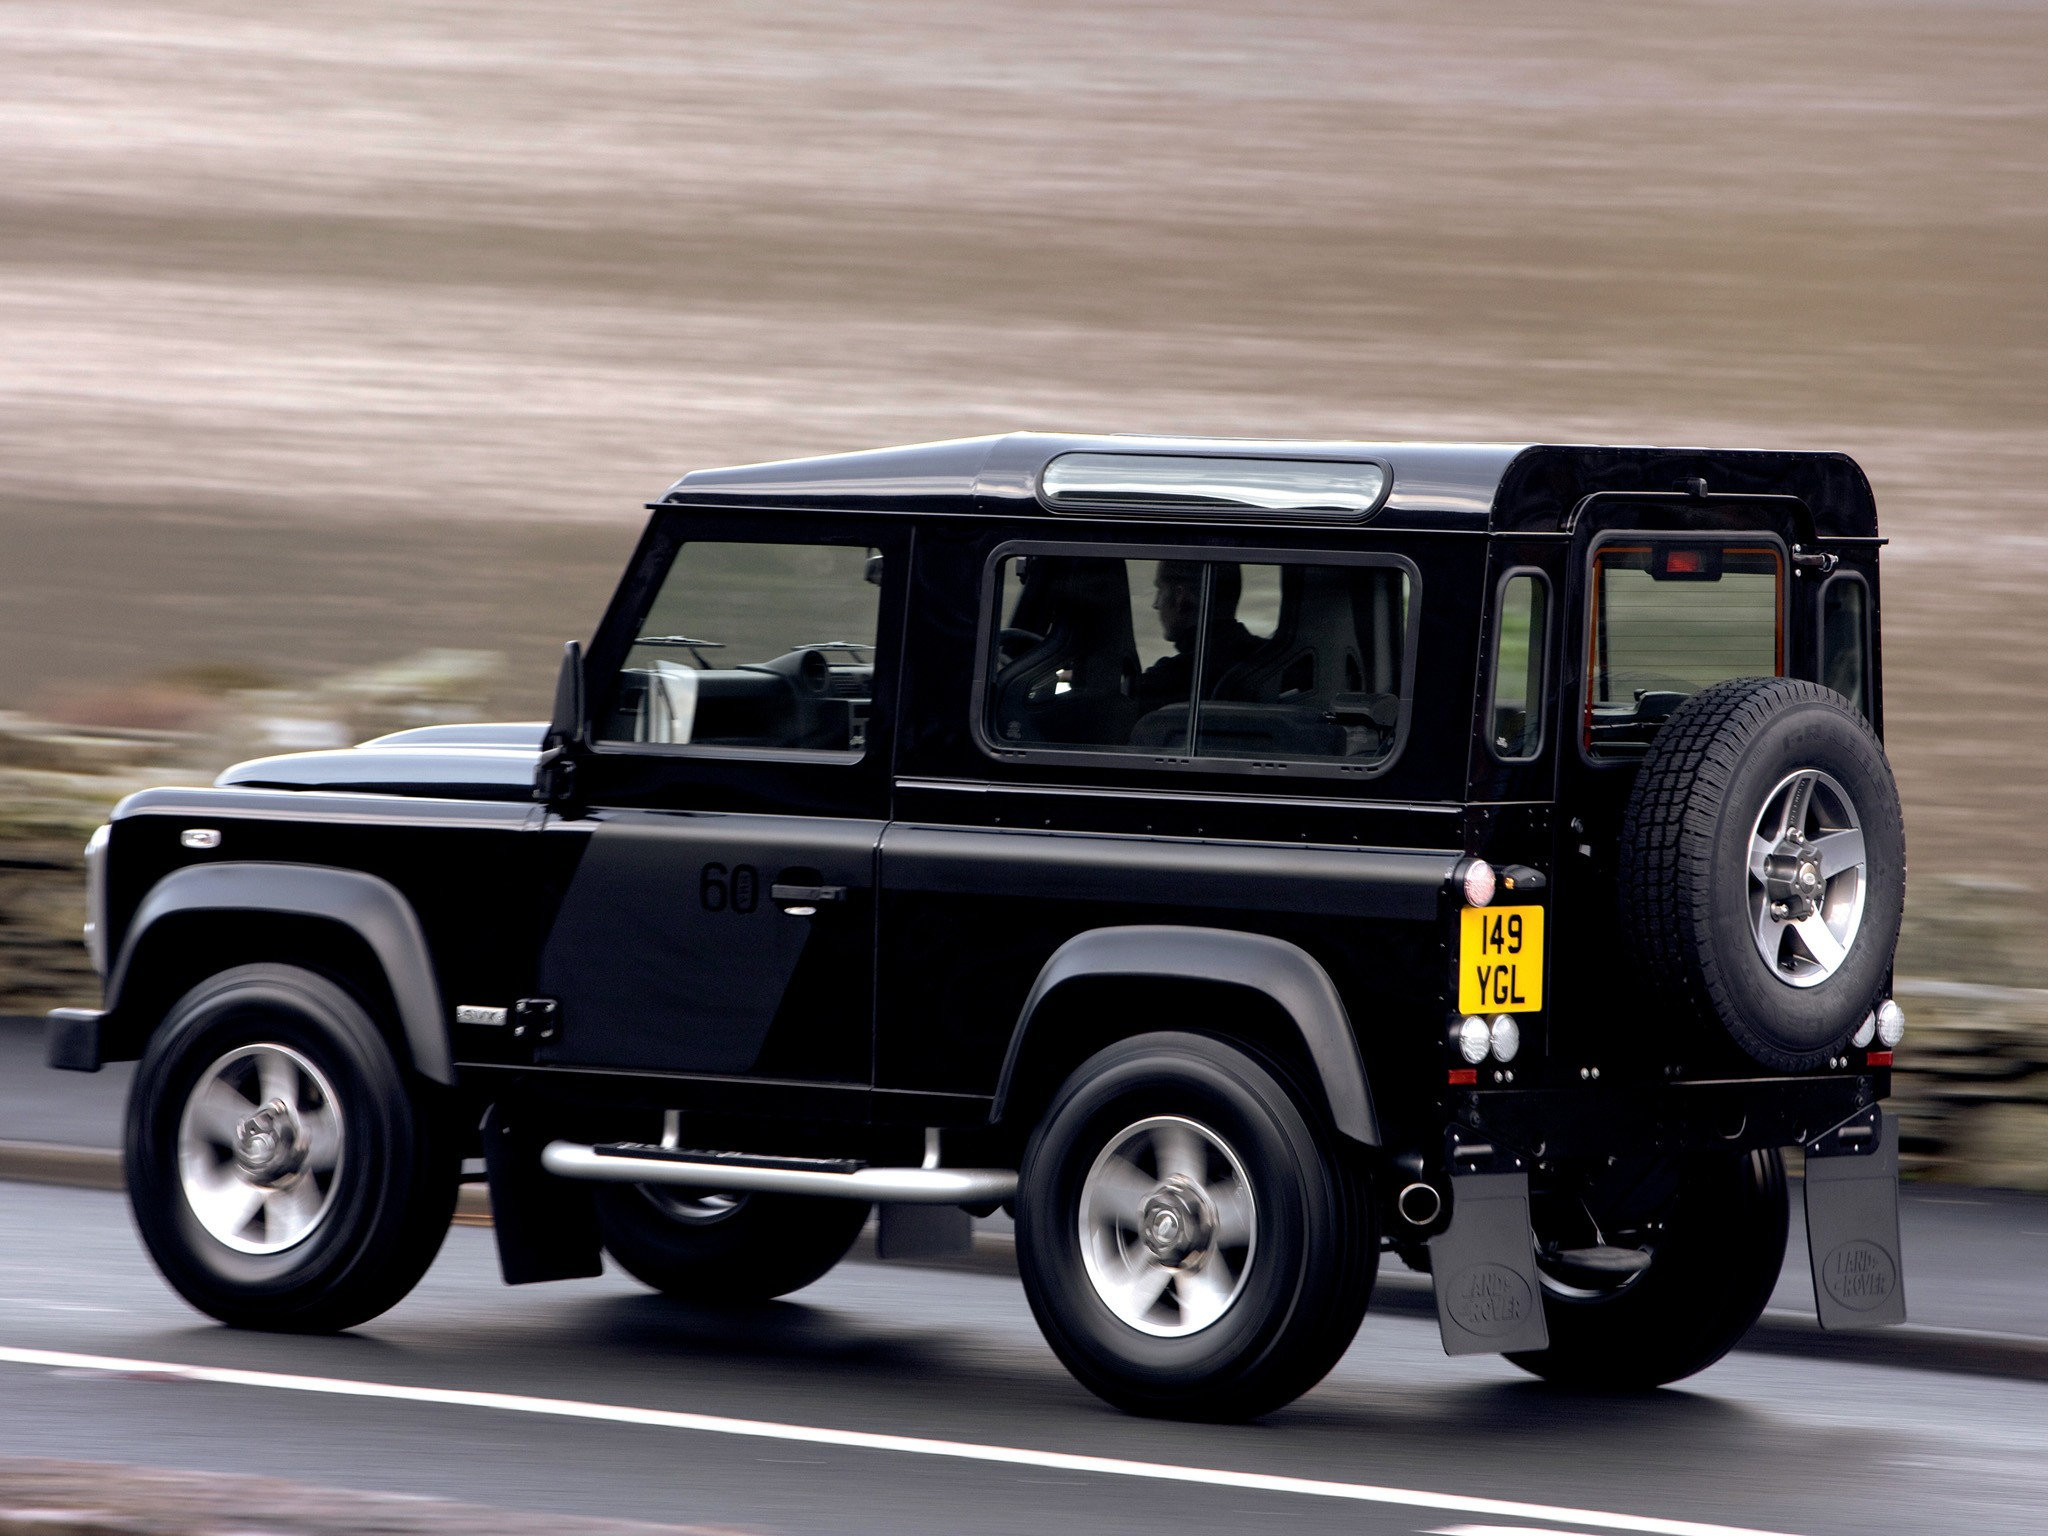 Land Rover Perth >> 2019 Land Rover Defender SVX Considered, Jaguar SVX Models Also Possible - autoevolution